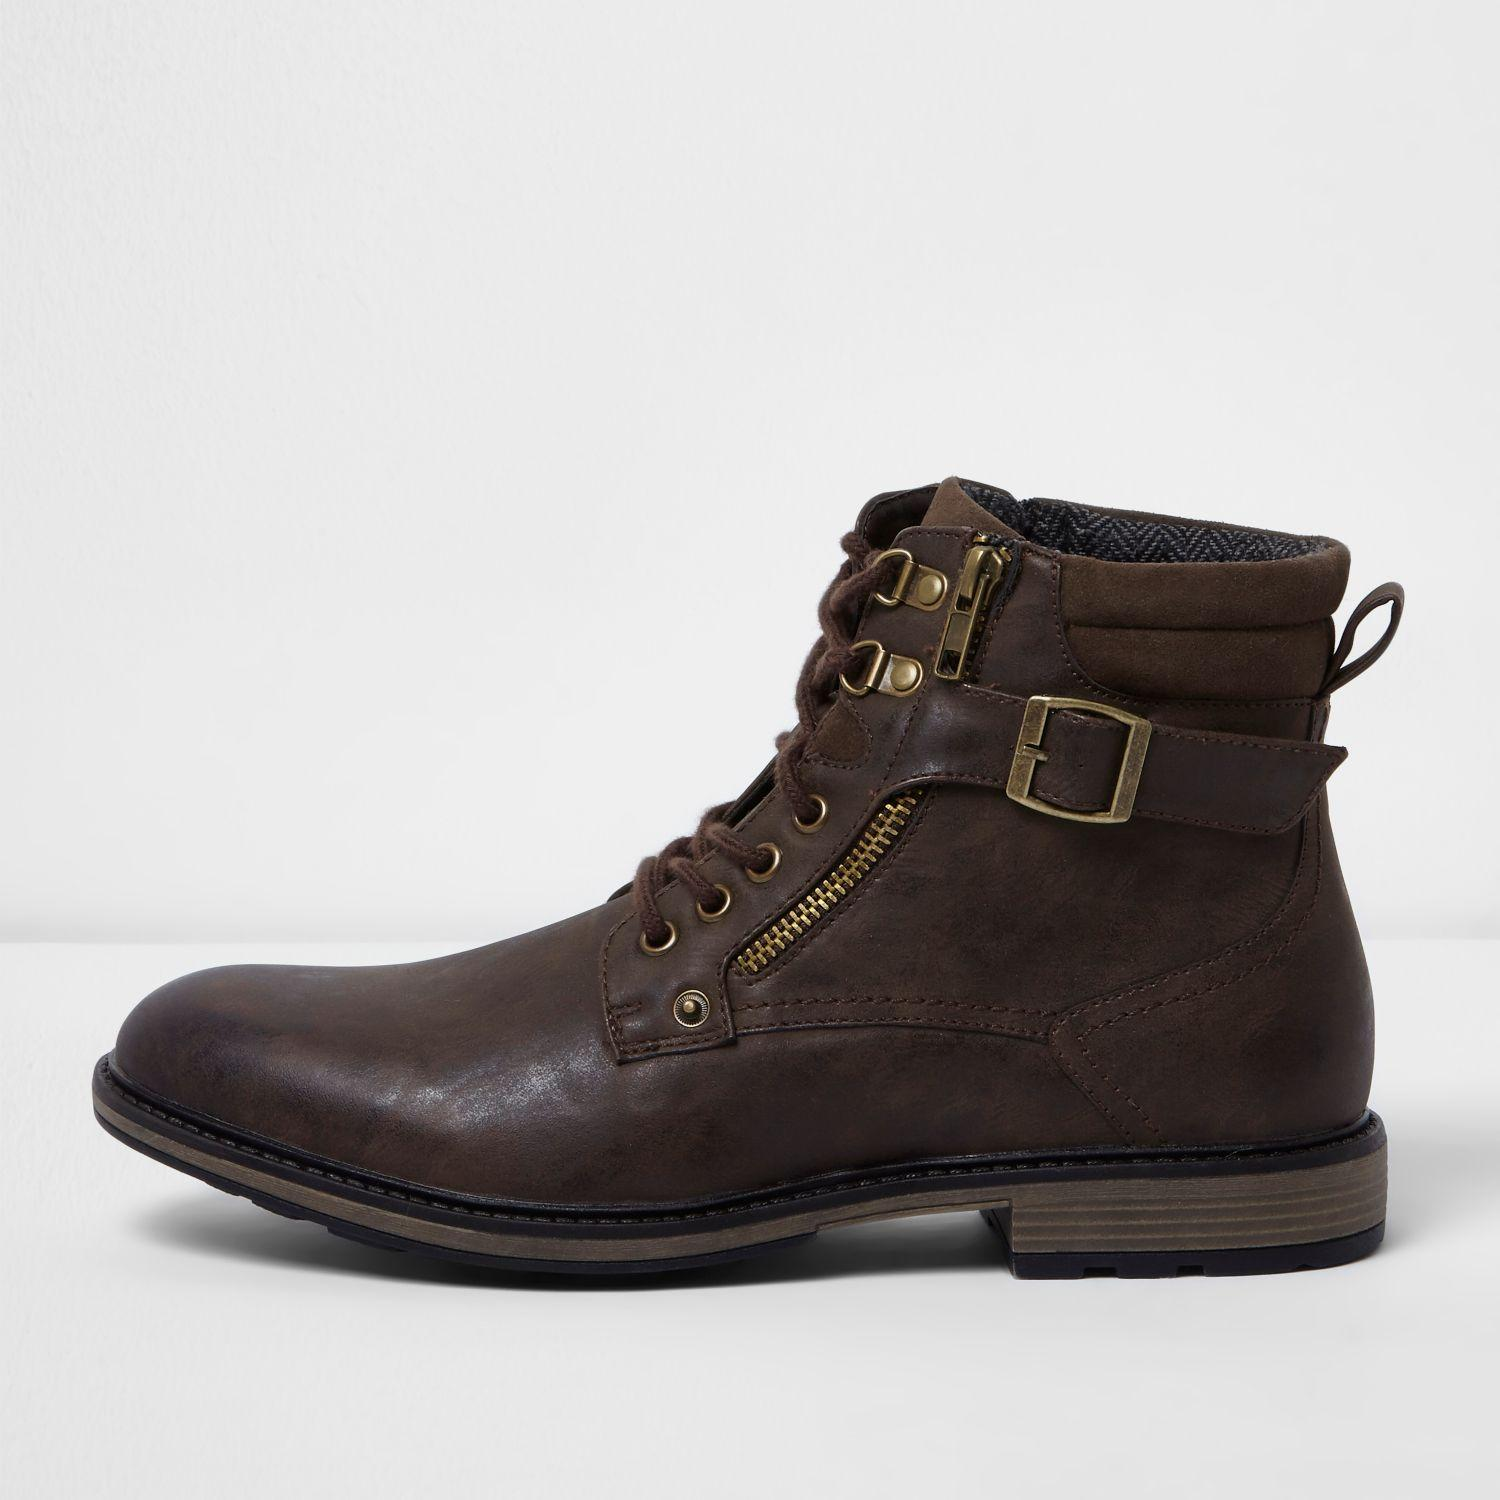 River Island Brown Leather Collar Boots